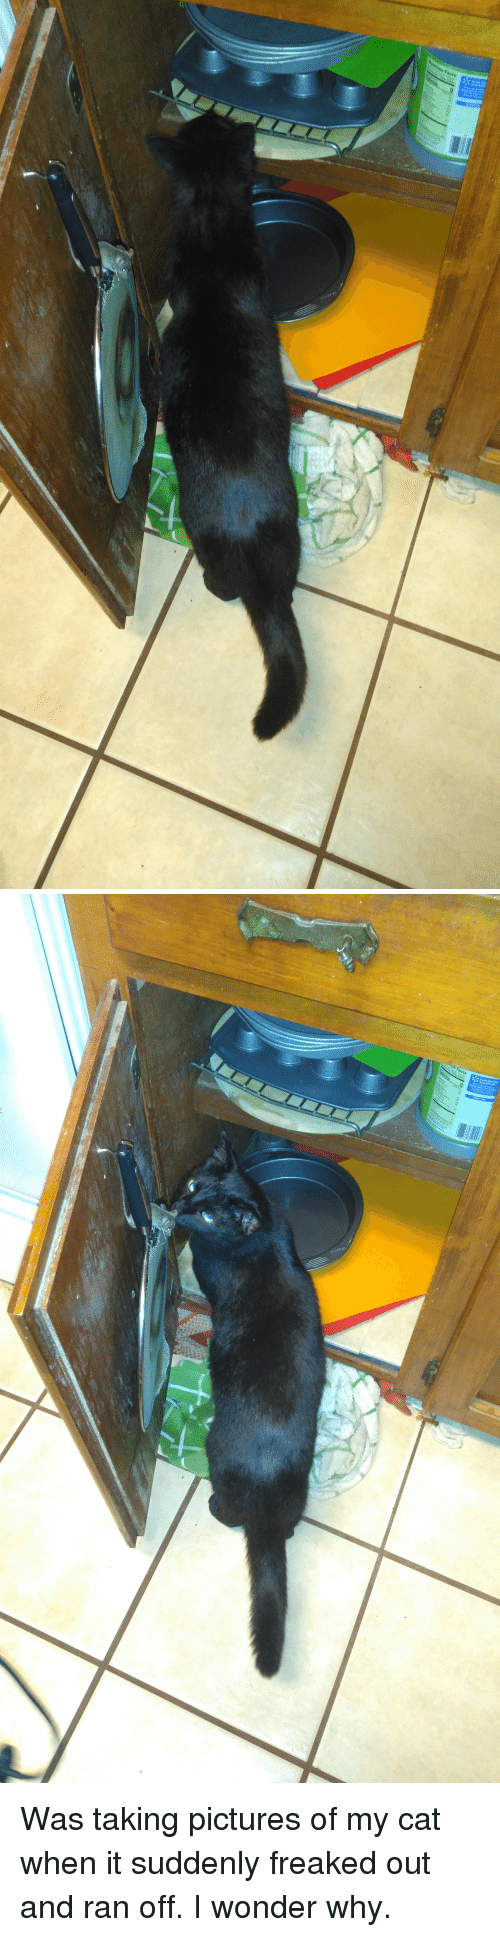 Freaked Out: Was taking pictures of my cat when it suddenly freaked out and ran off. I wonder why.